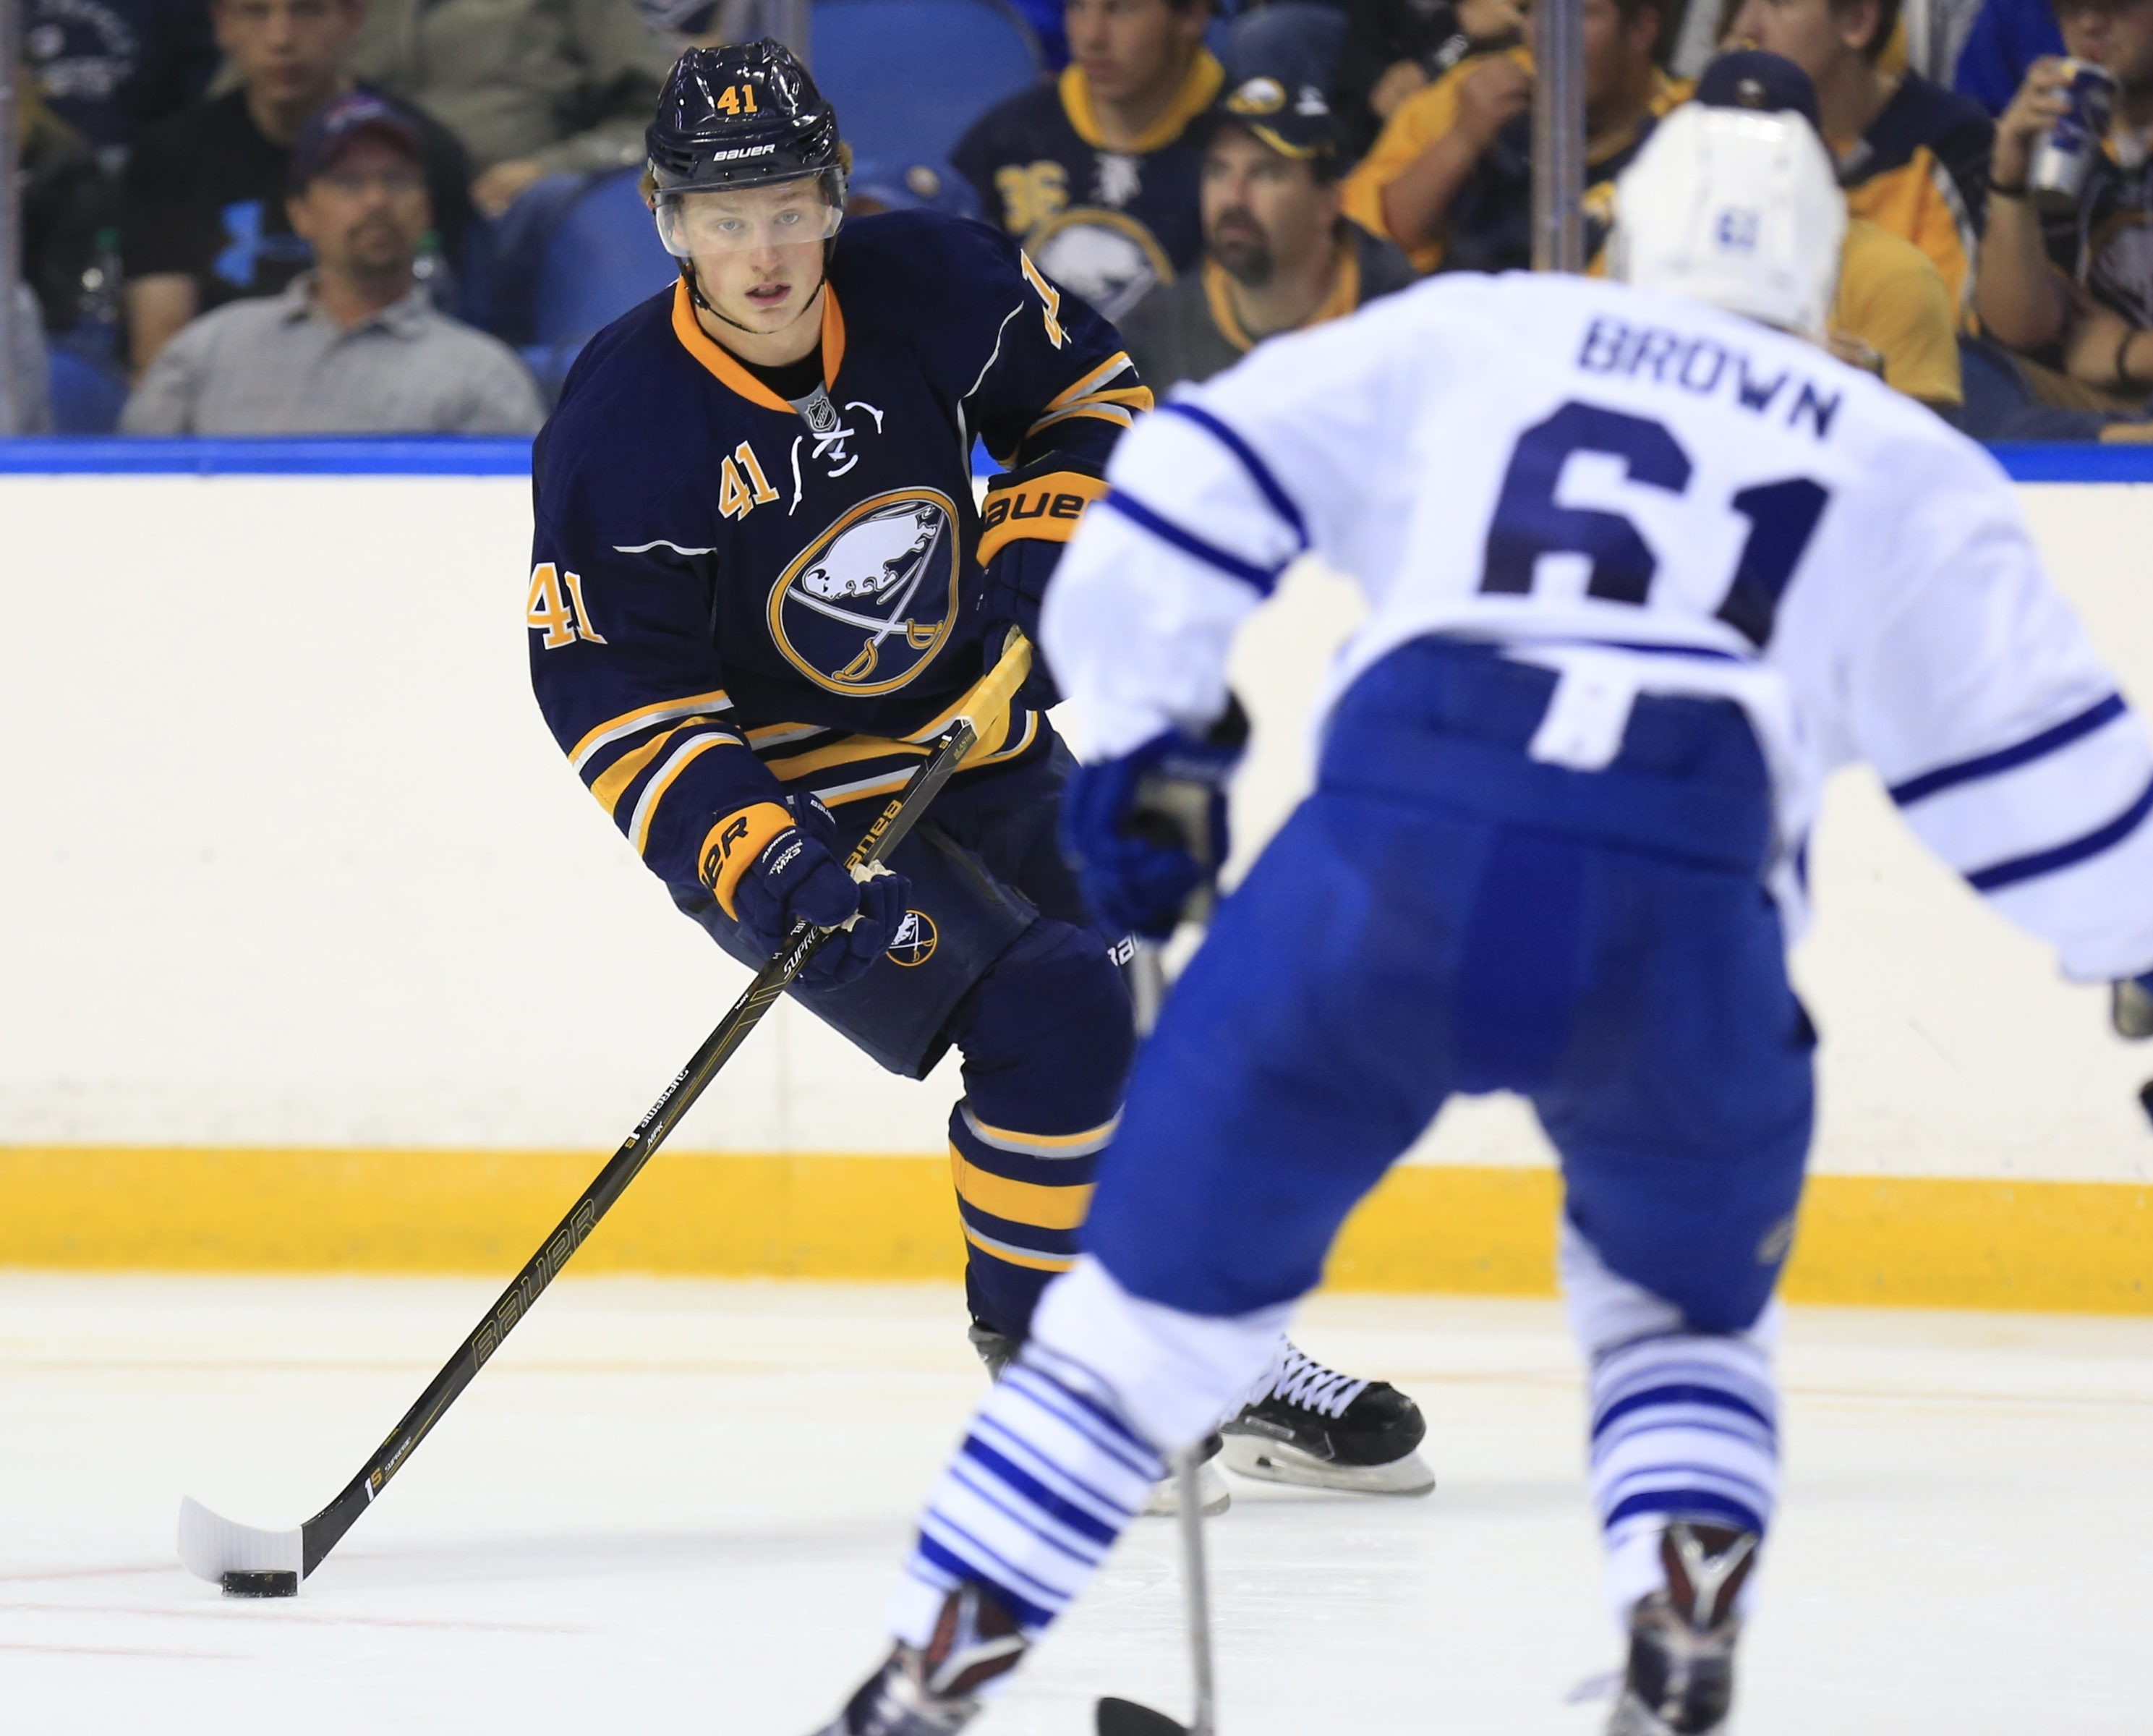 Buffalo Sabre Jack Eichel moves the puck against the Toronto Maple Leafs during second-period action at First Niagara Center on Sept. 29.